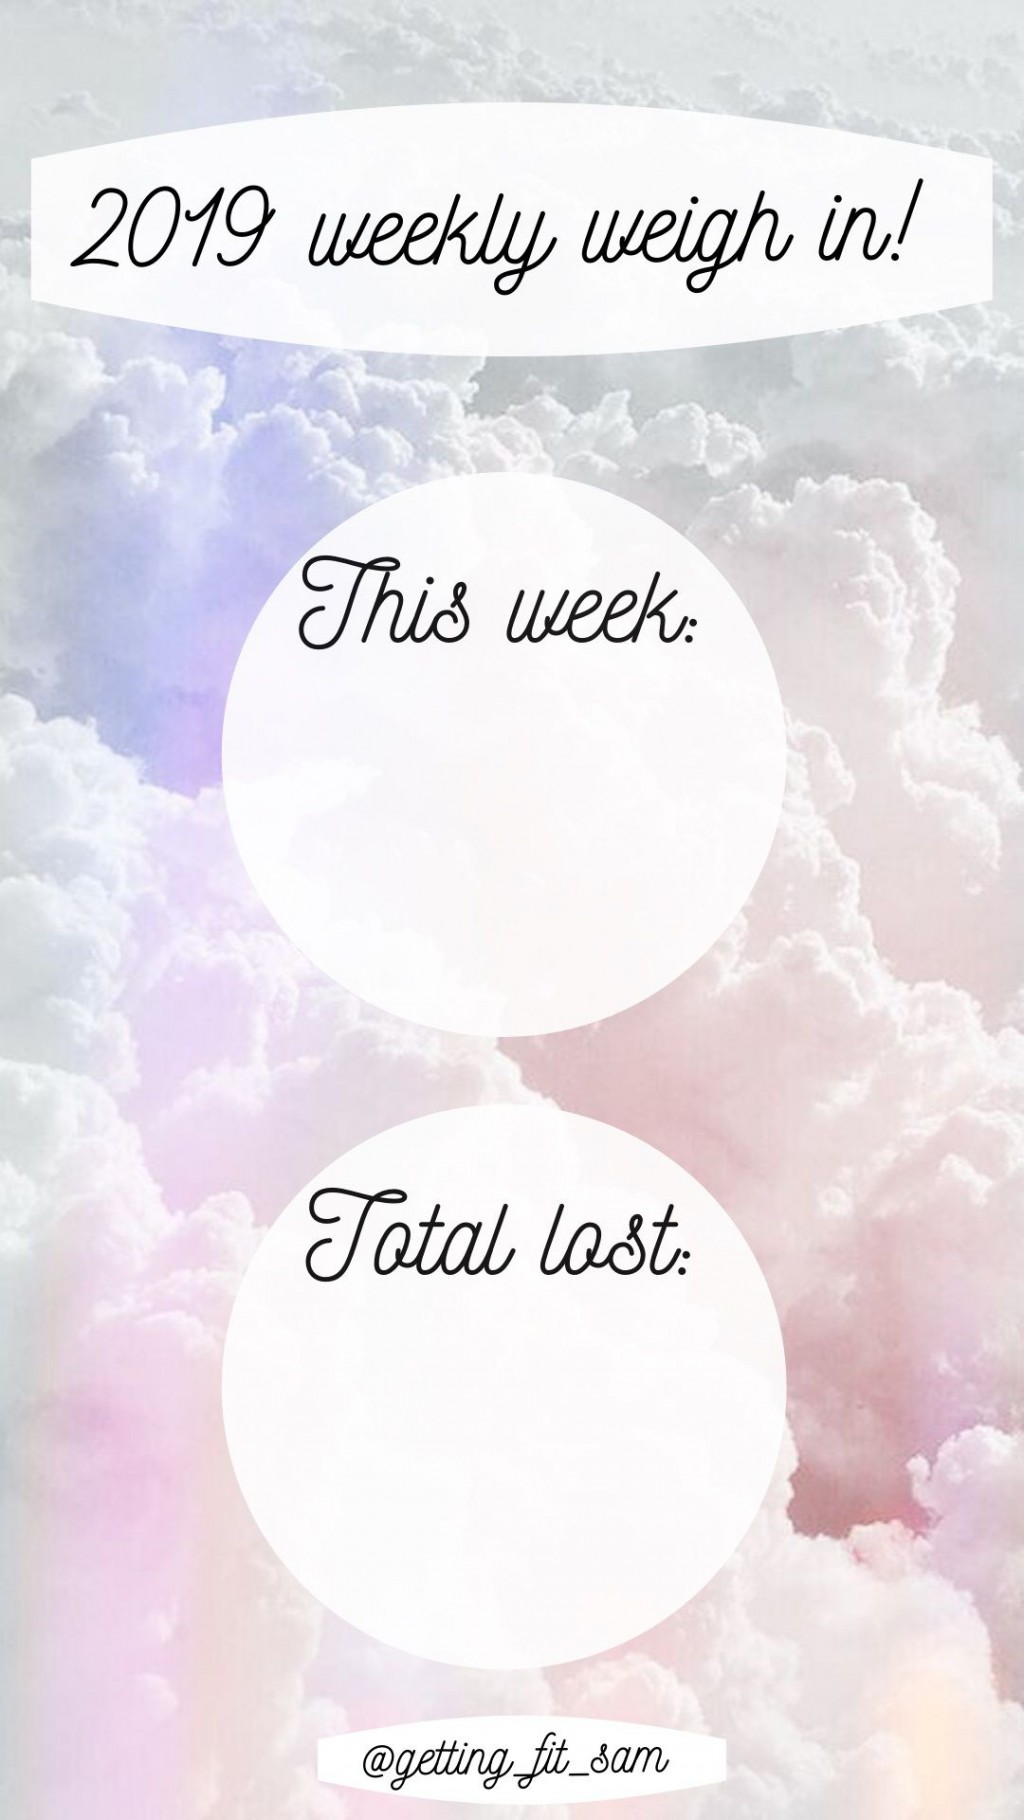 000 Amazing Weight Los Tracker Template Idea  Weekly In Thi Body I Live Instagram 2019 2020Large